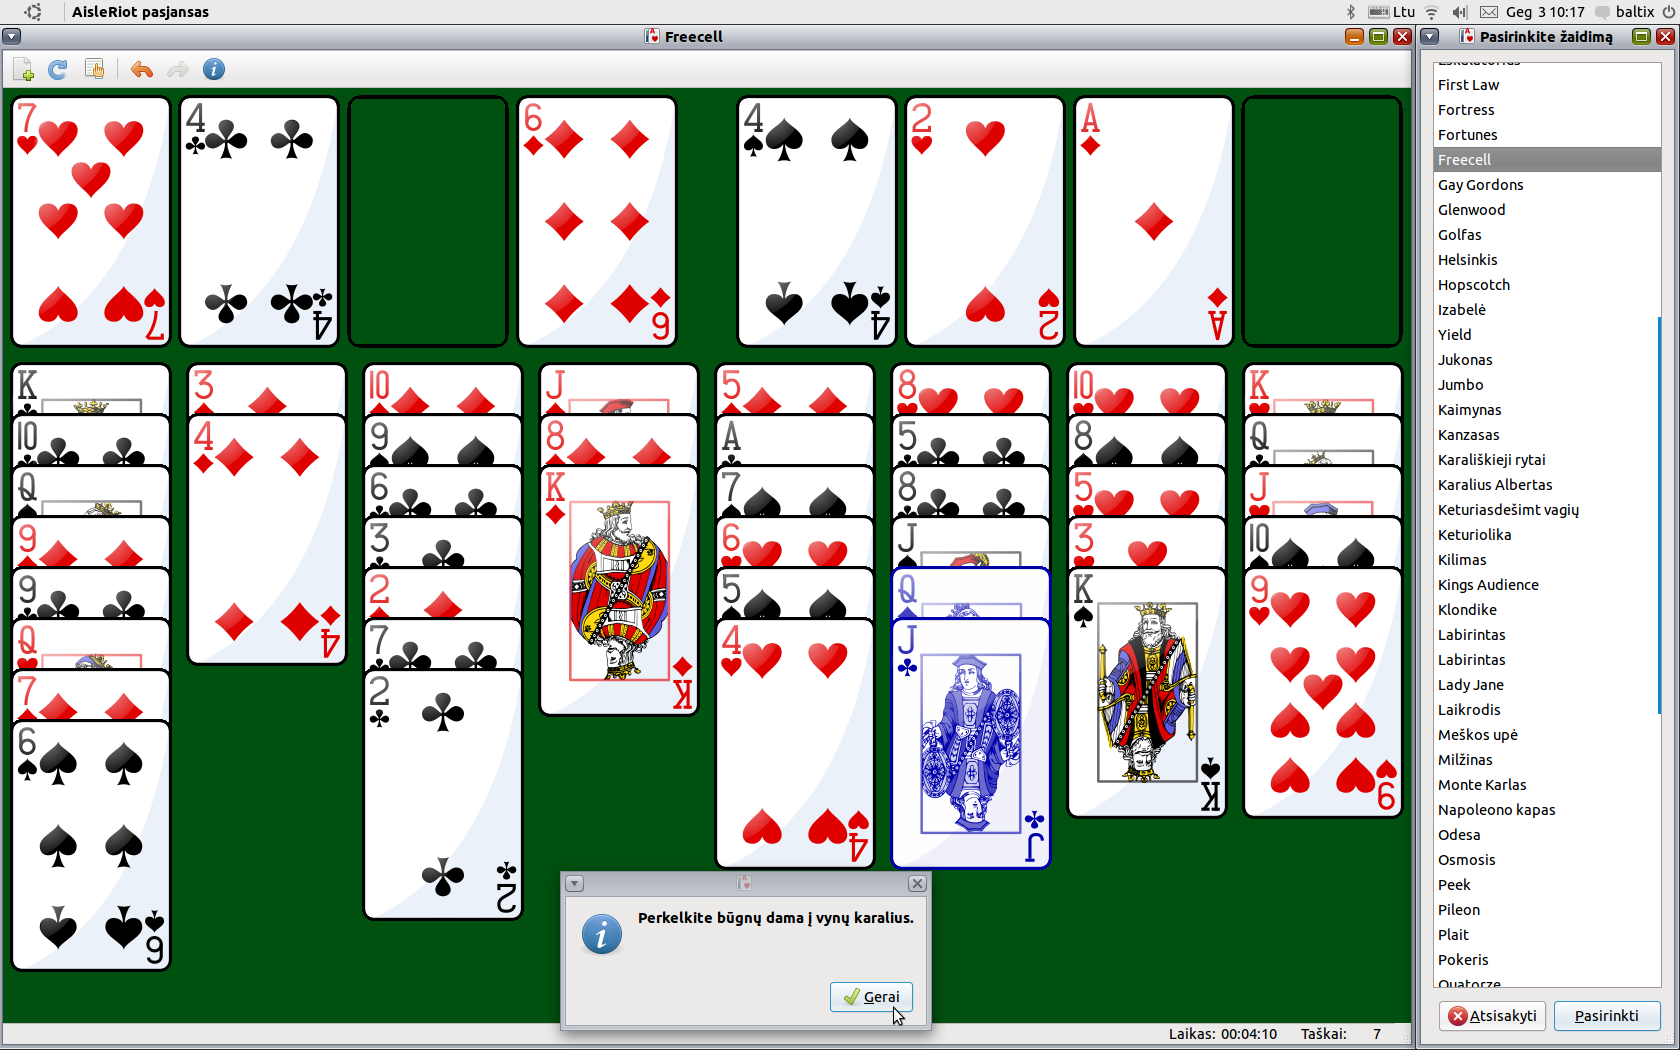 Games freecell